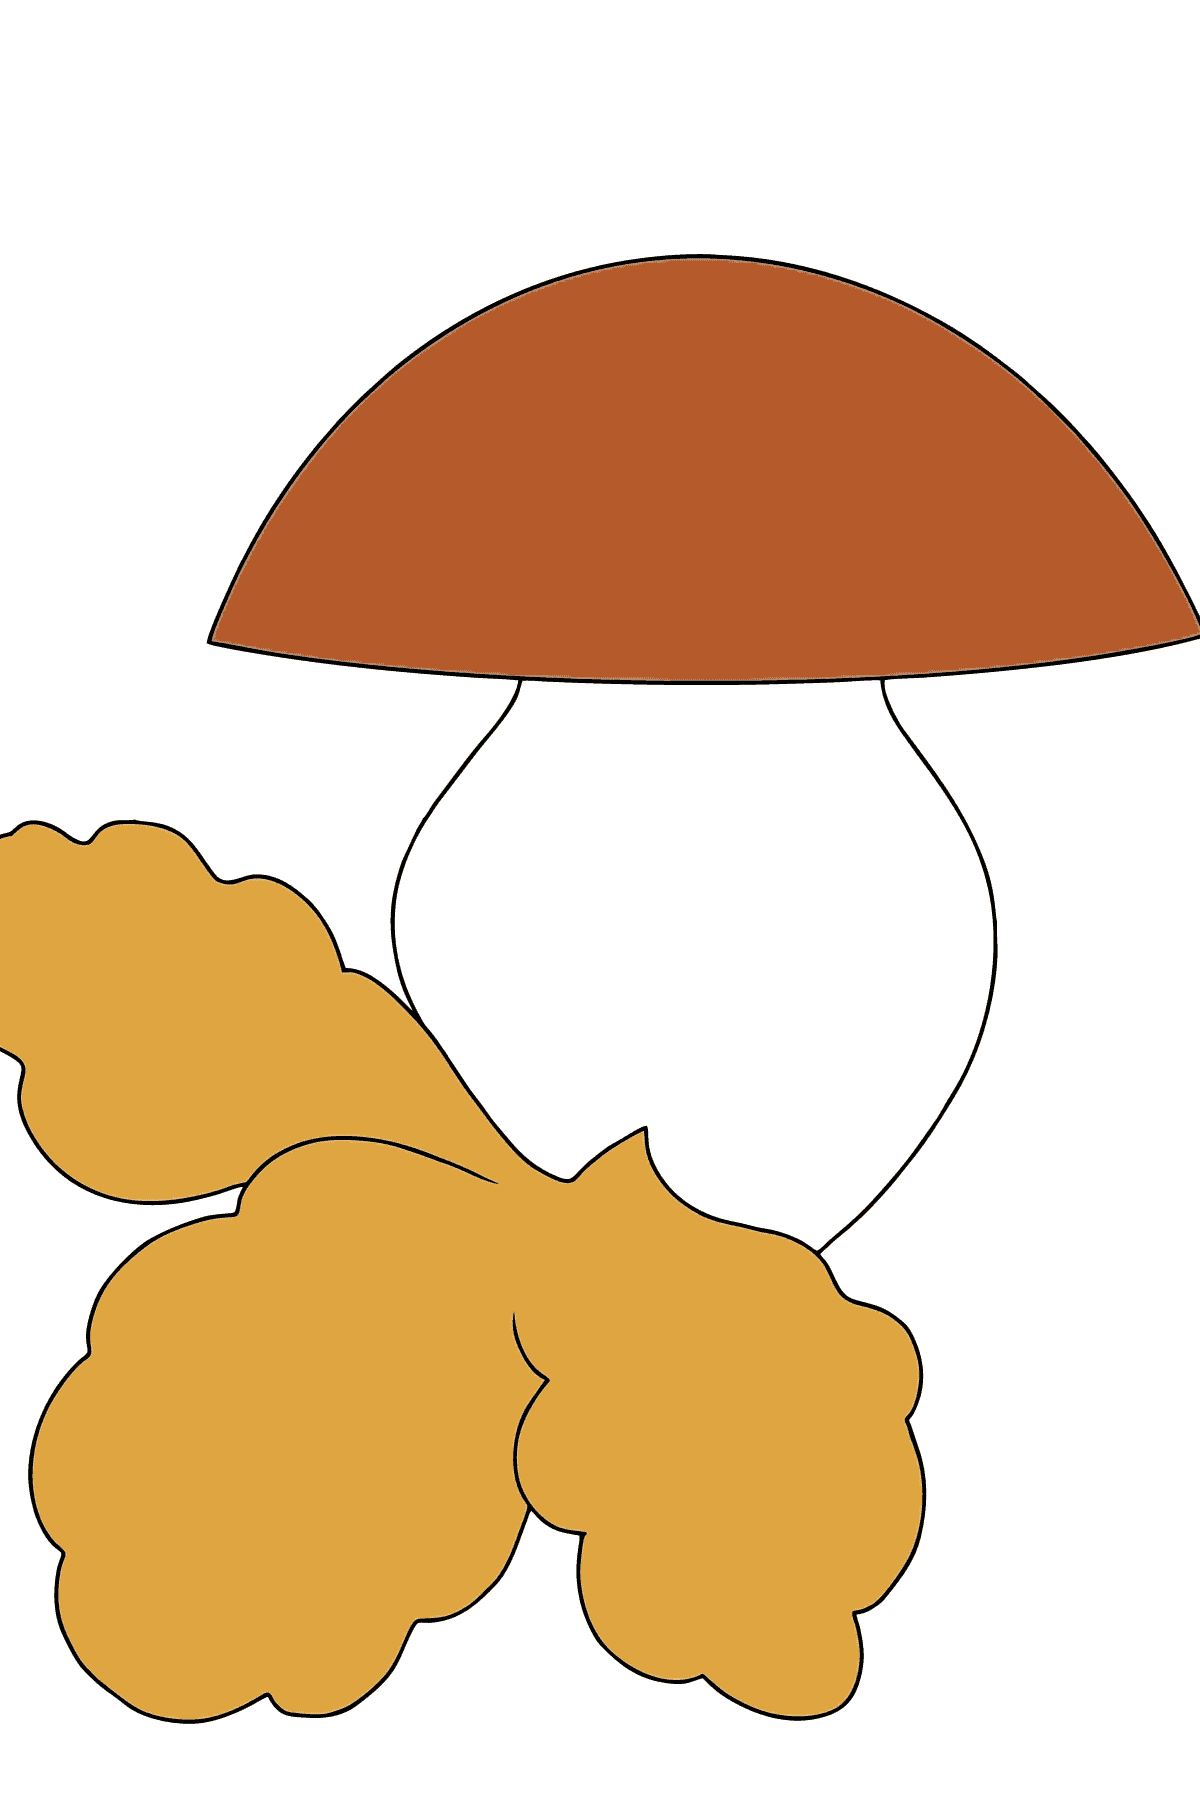 Autumn Coloring Page - Mushrooms in the Forest for Children